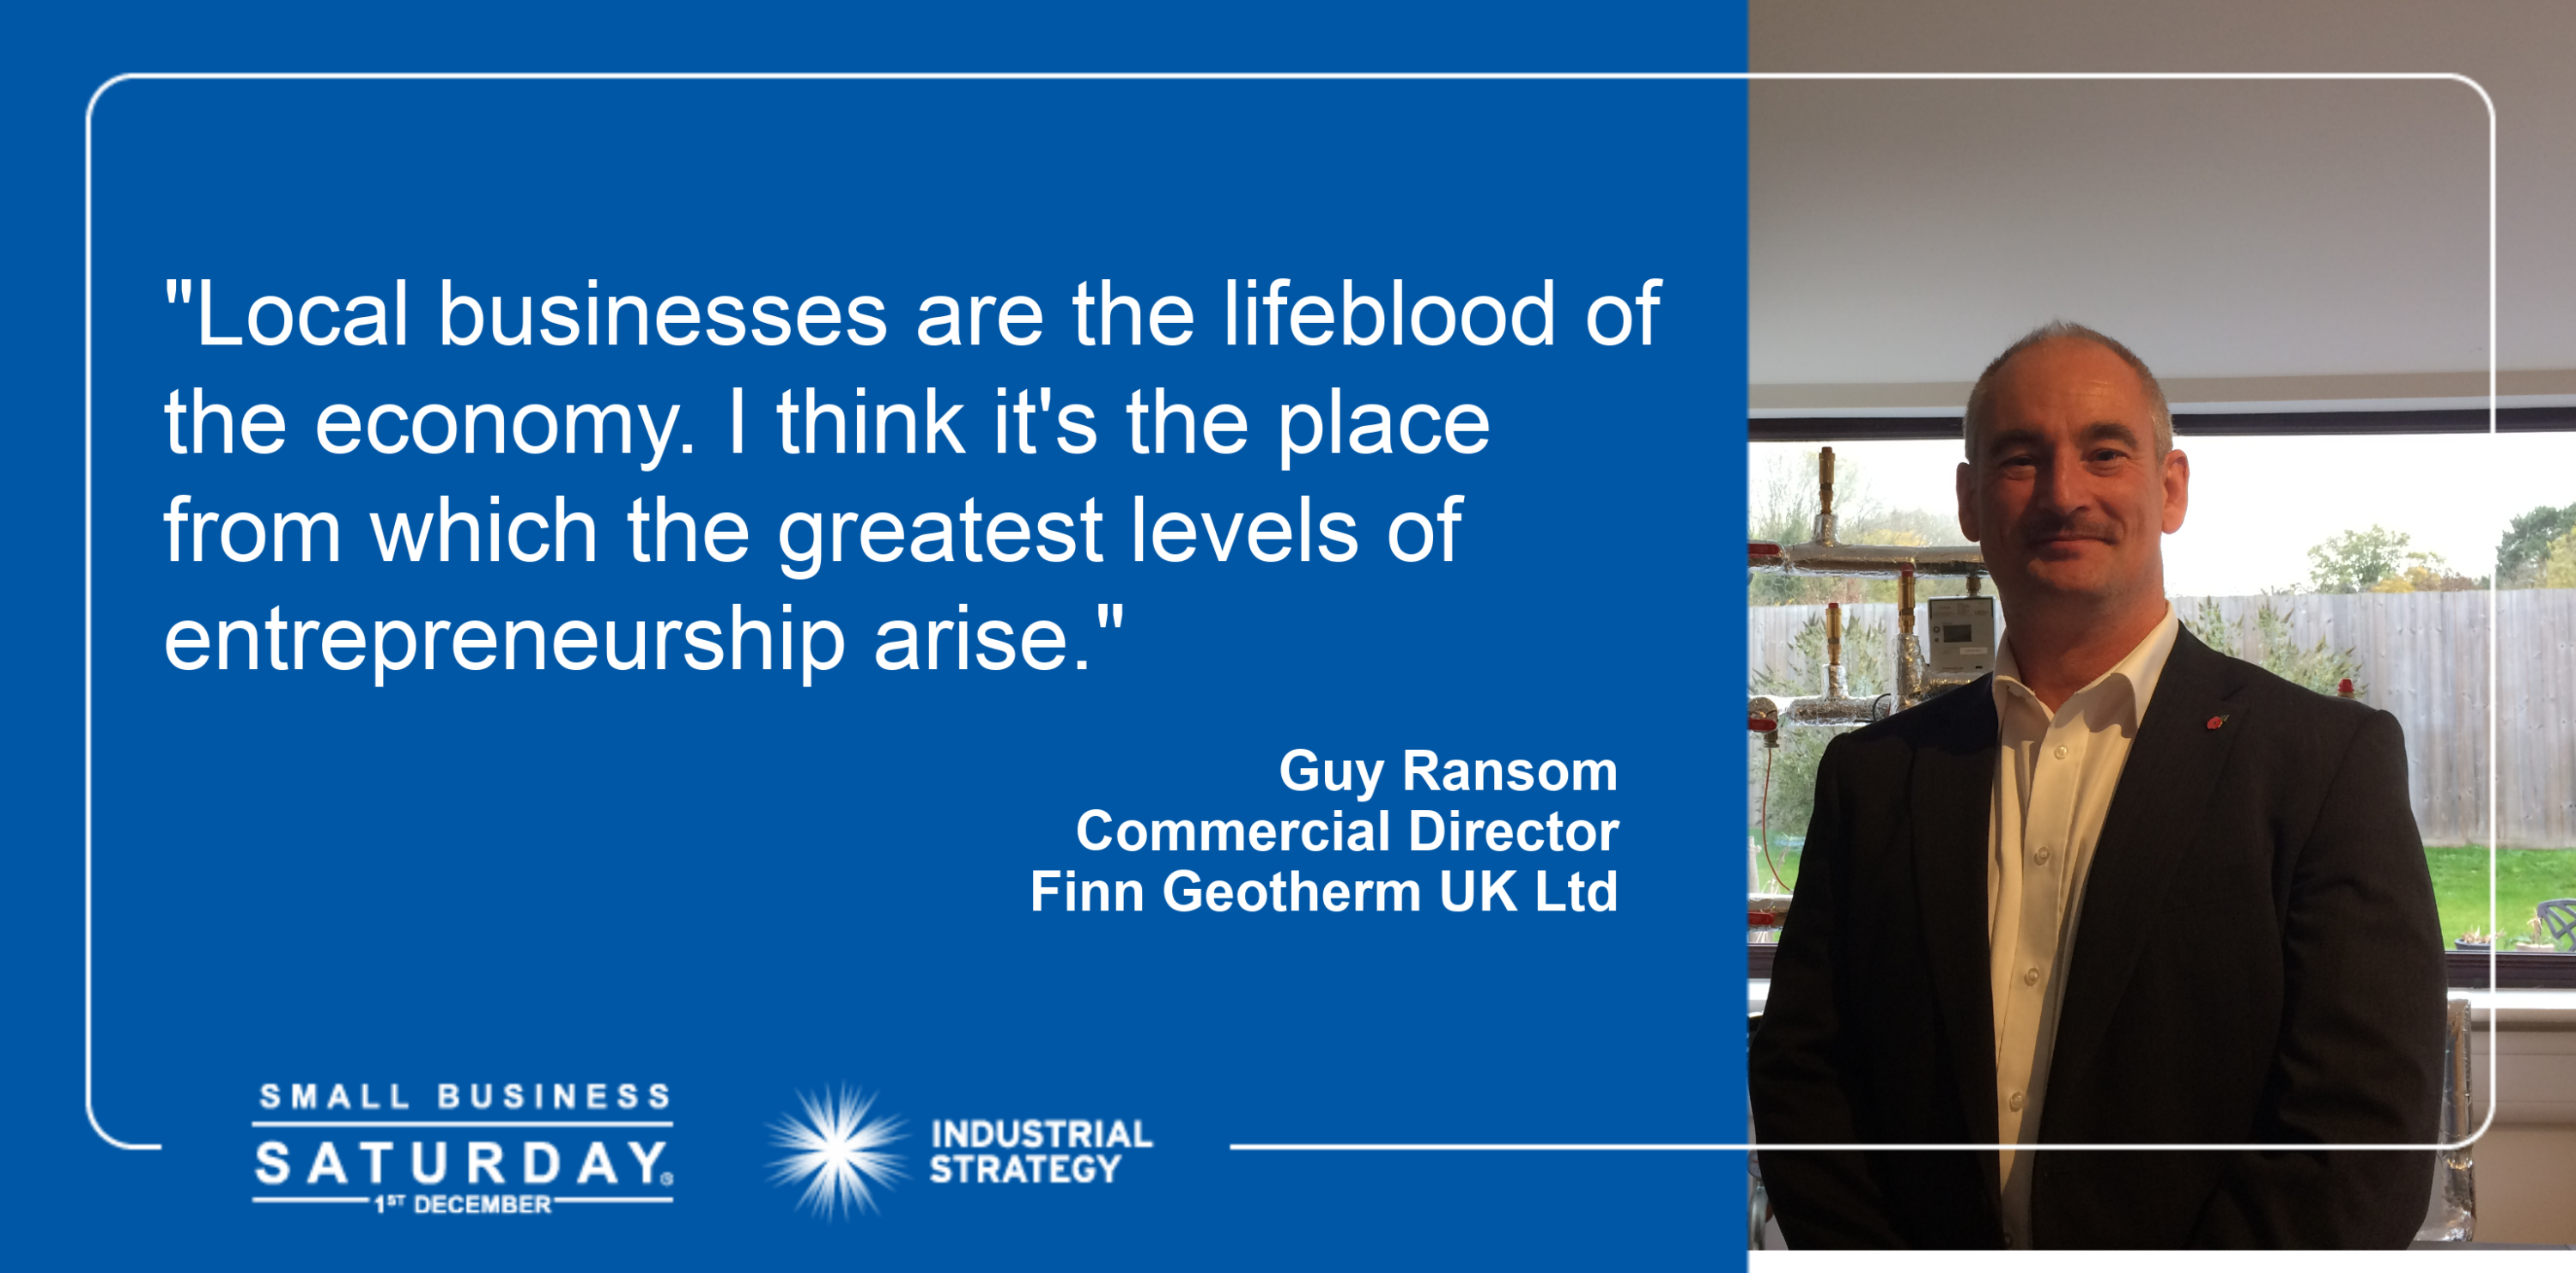 Guy Ransom is appearing in the HM Government campaign for Small Business Saturday